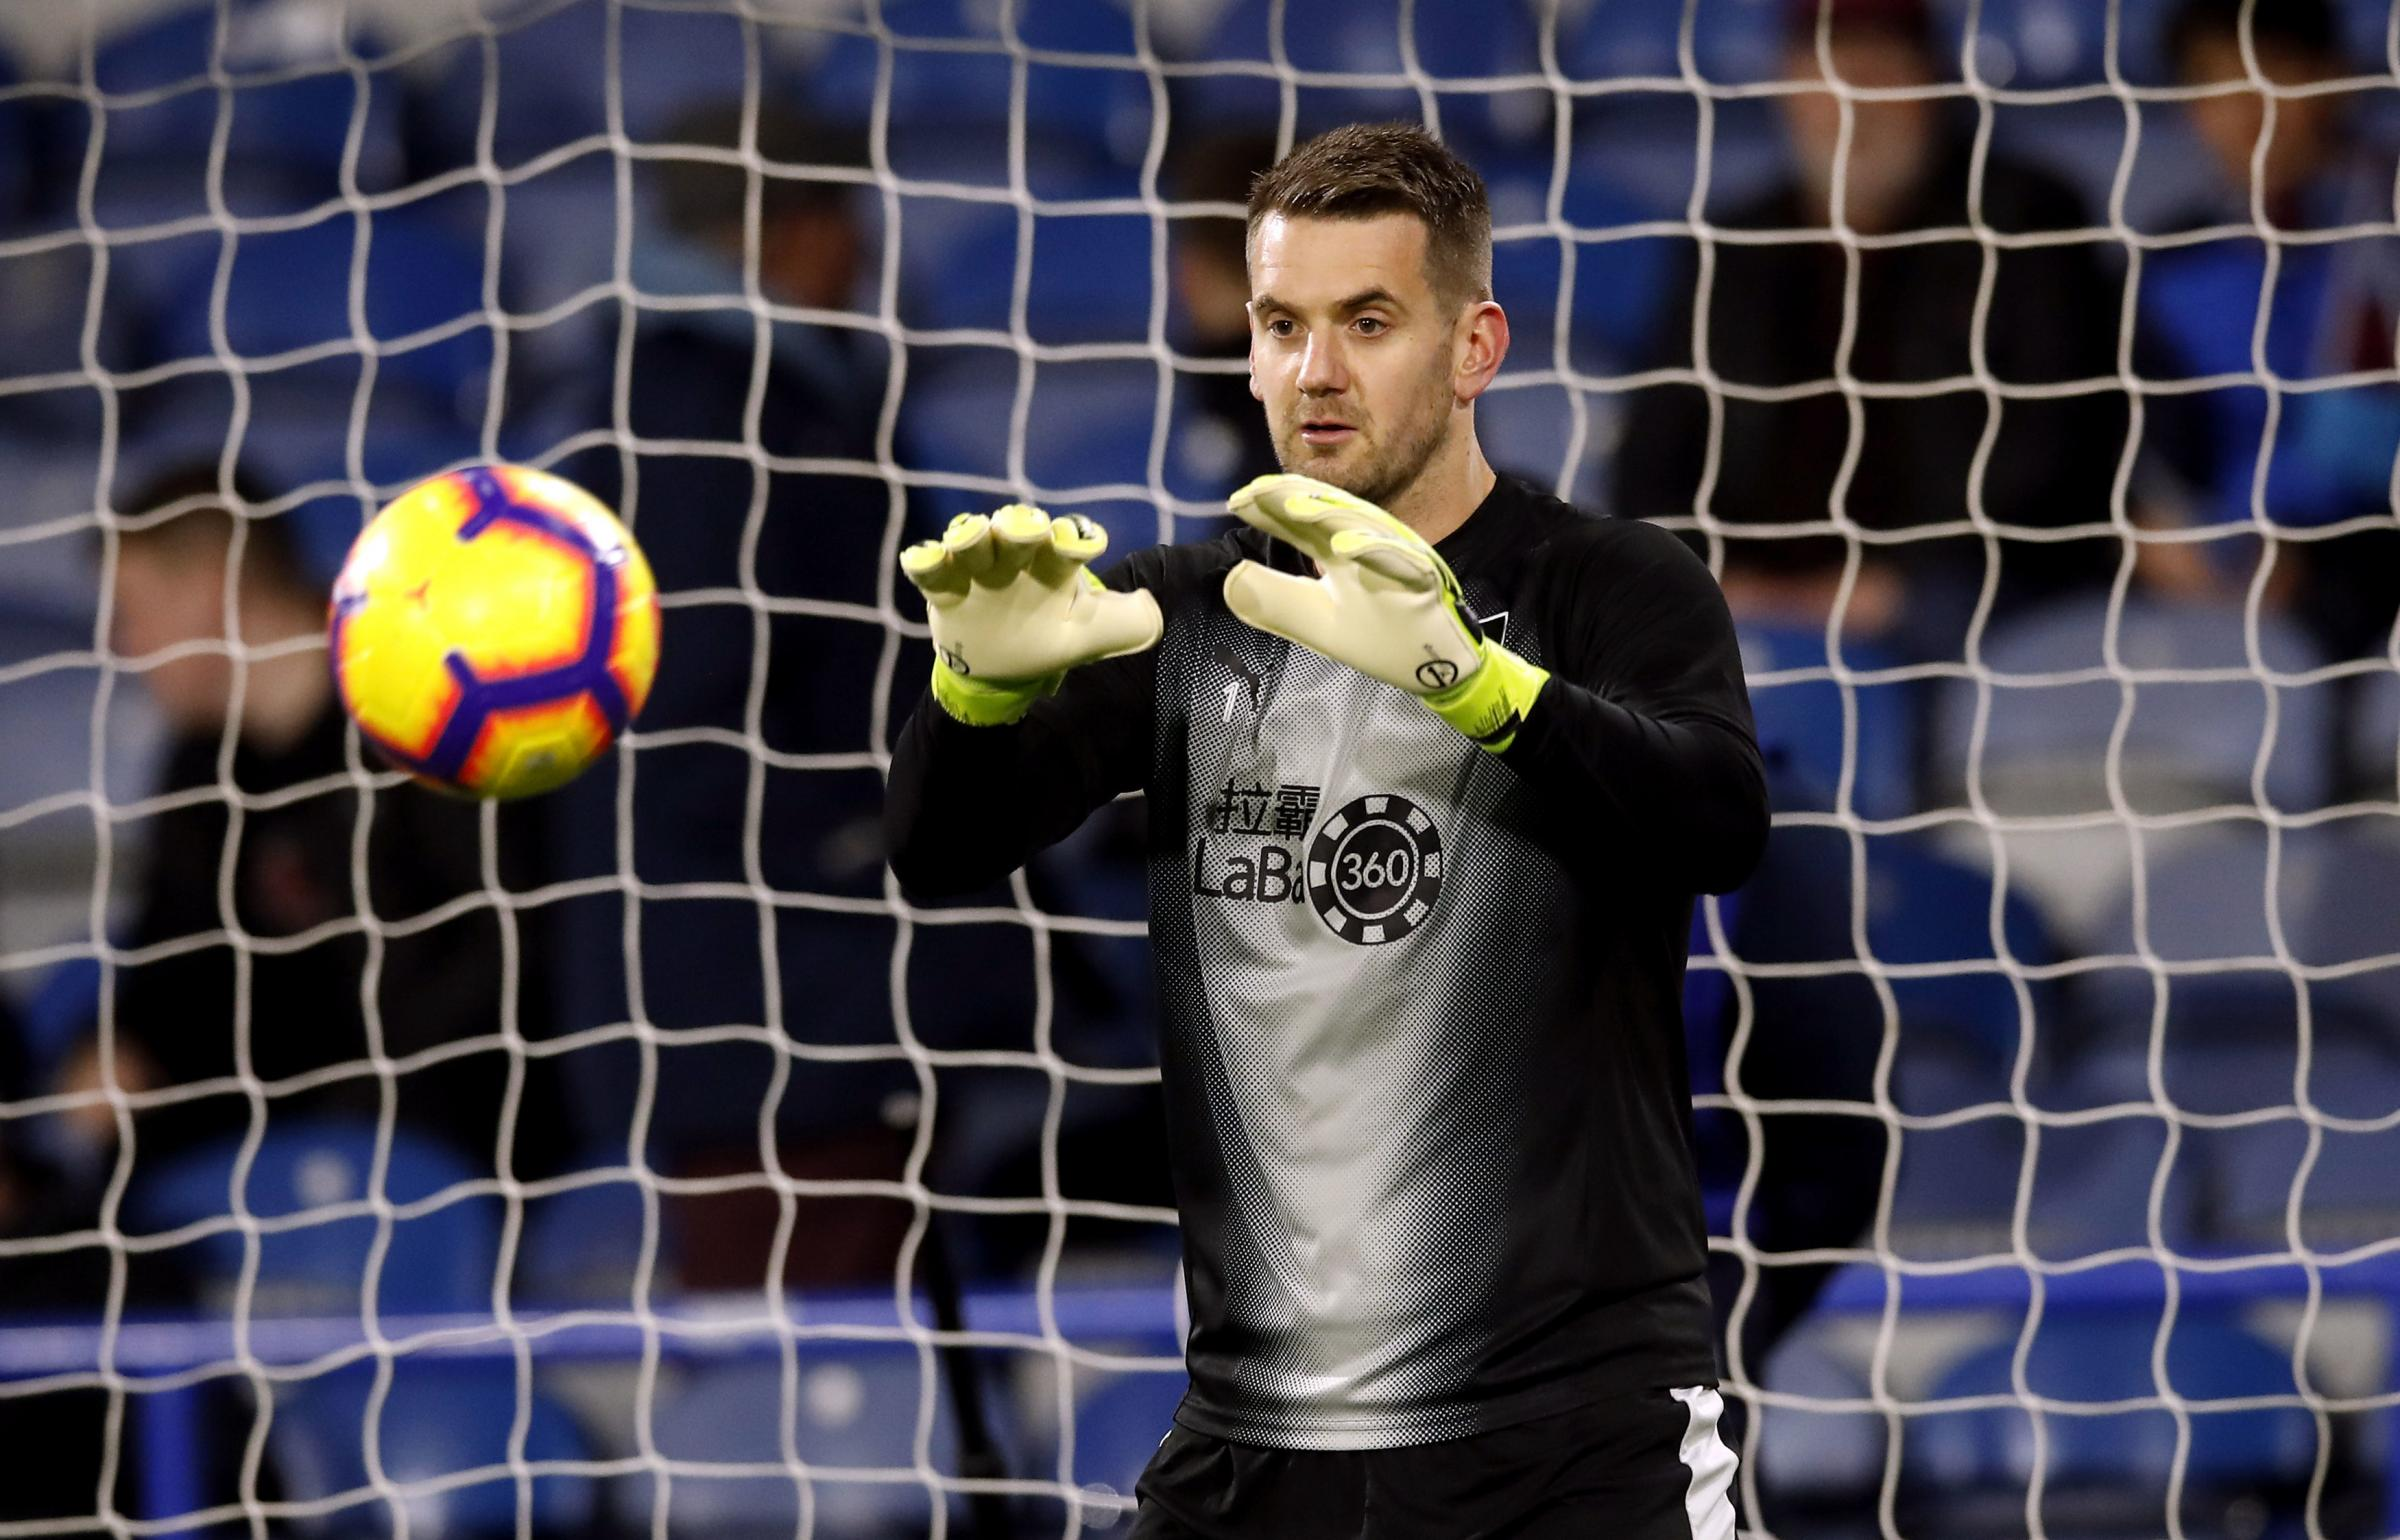 AFC Bournemouth 'could make a move' for Burnley goalkeeper Tom Heaton, according to report